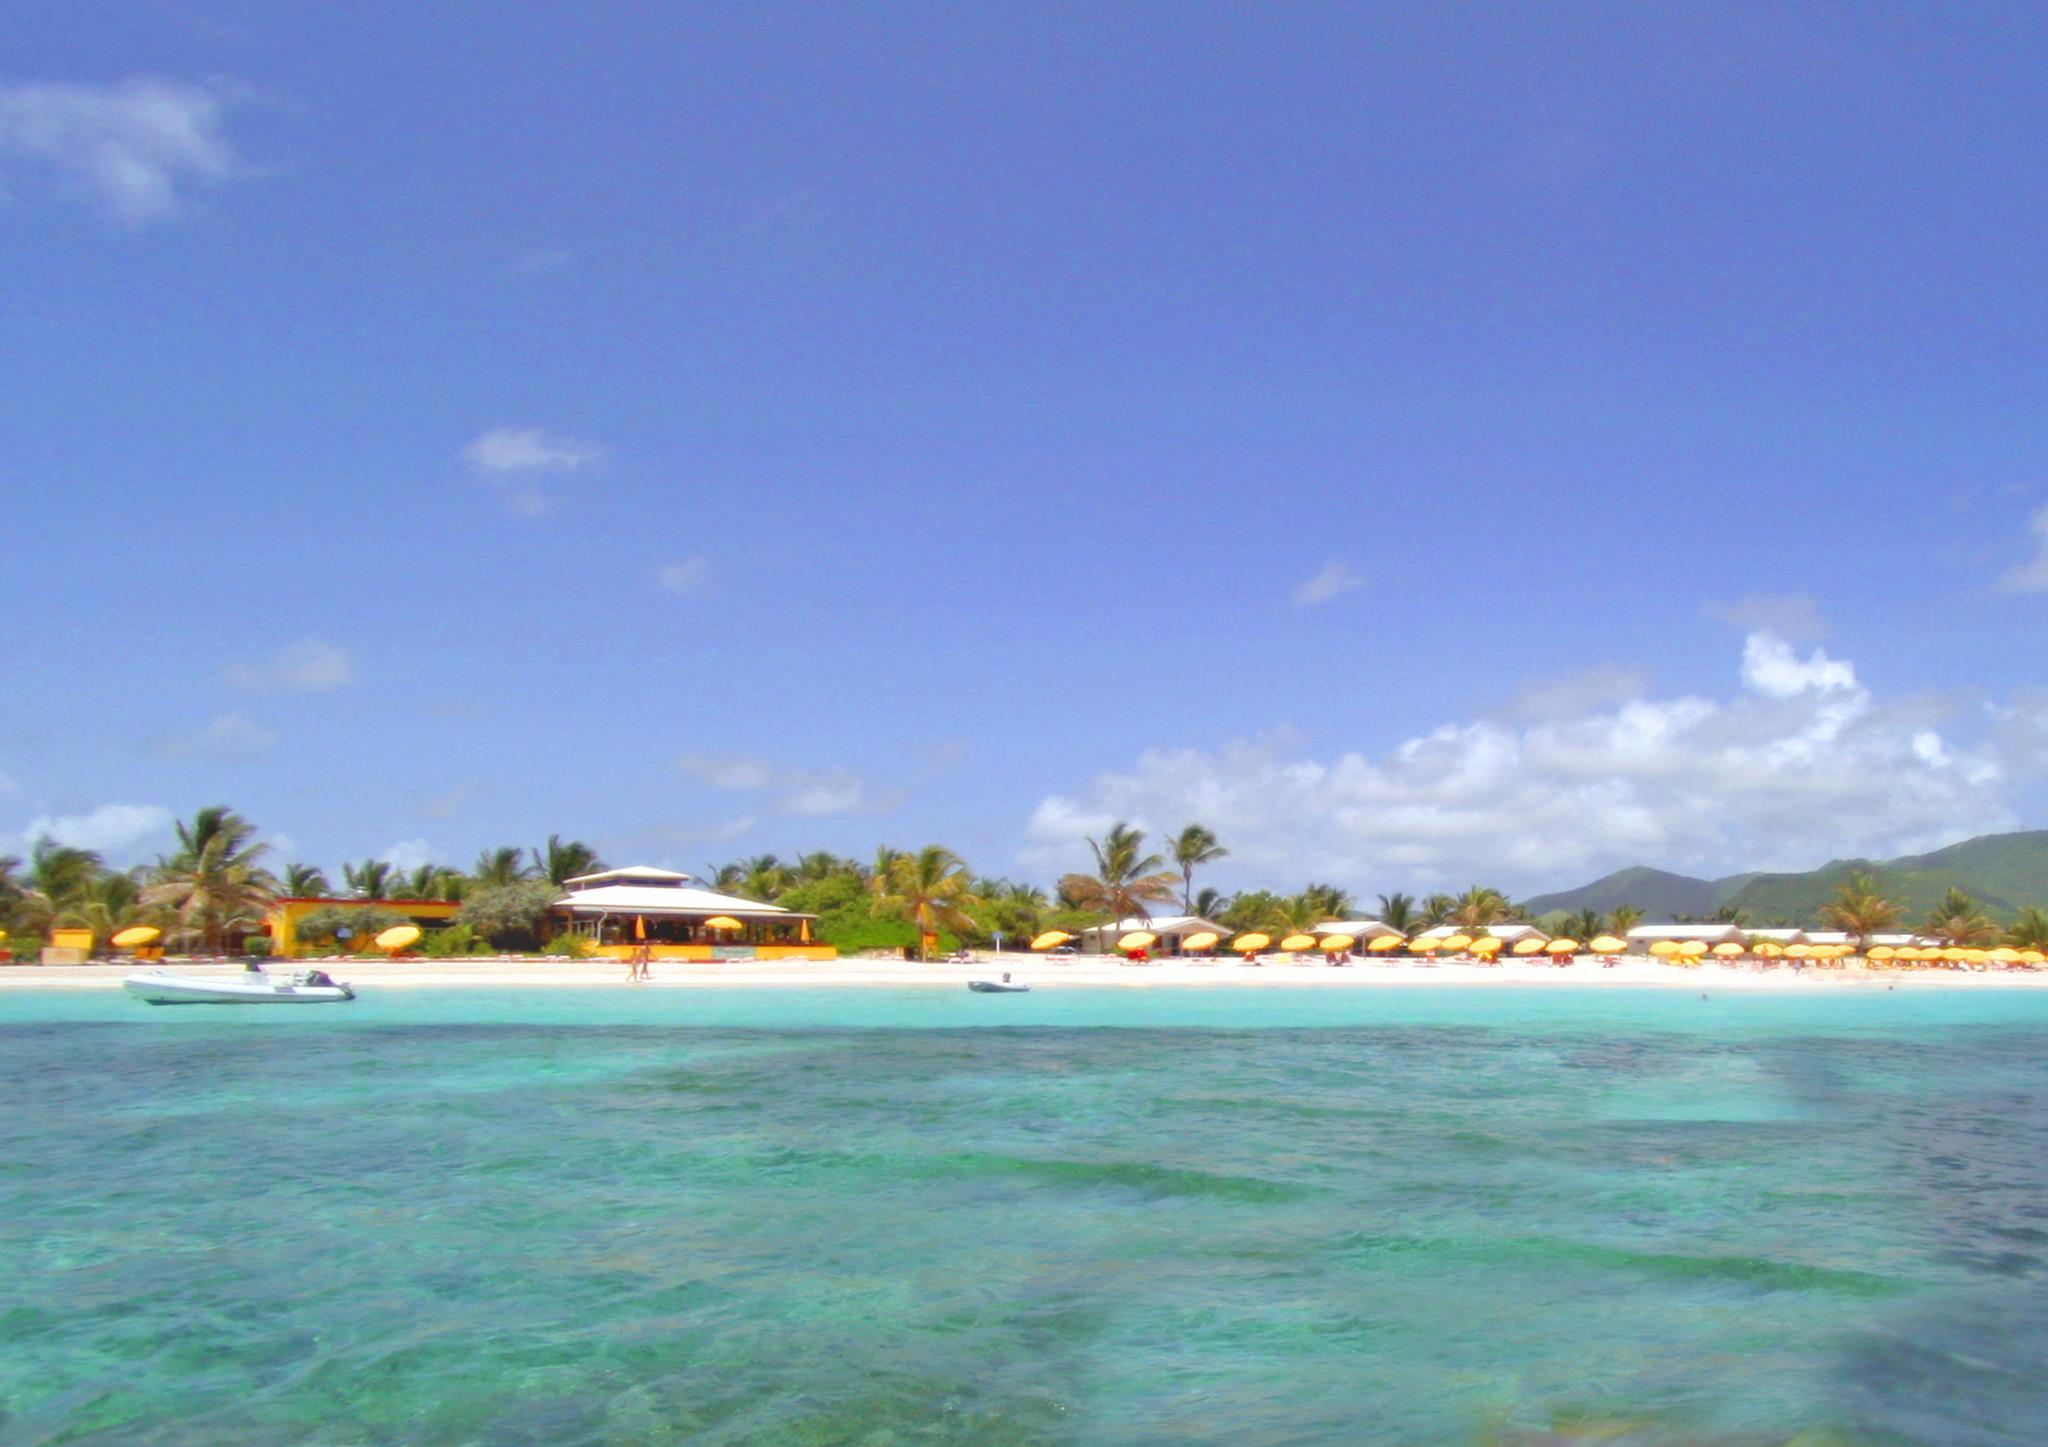 Fun things to do in St Martin incoude e clothing optional bathing at Orient Bay